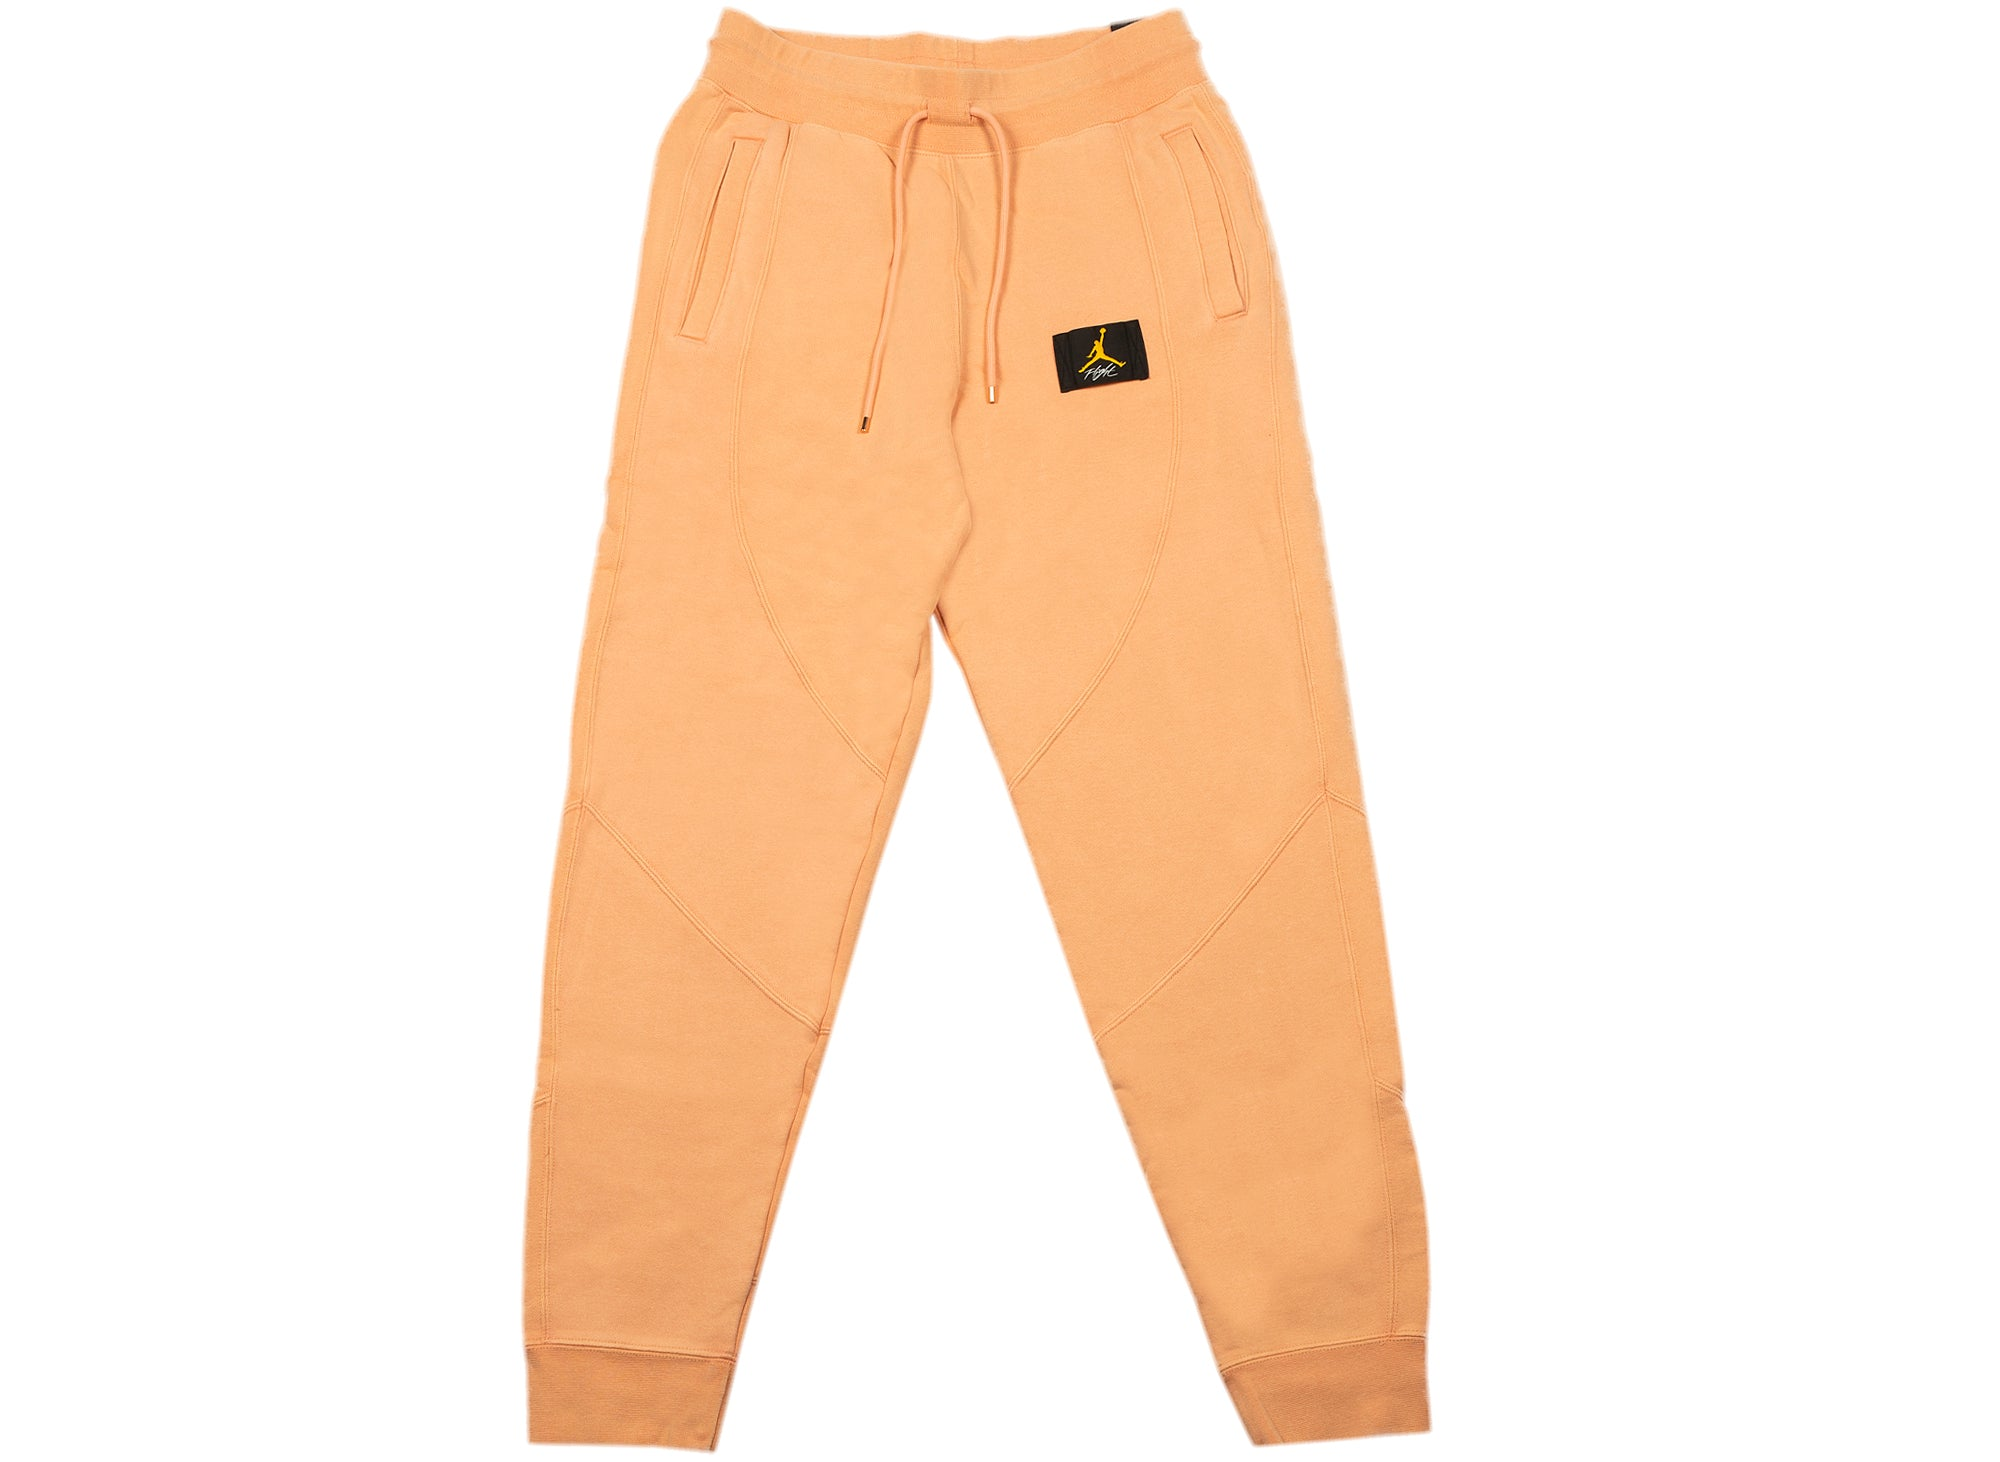 Women's Jordan Flight Fleece Trousers in Apricot xld